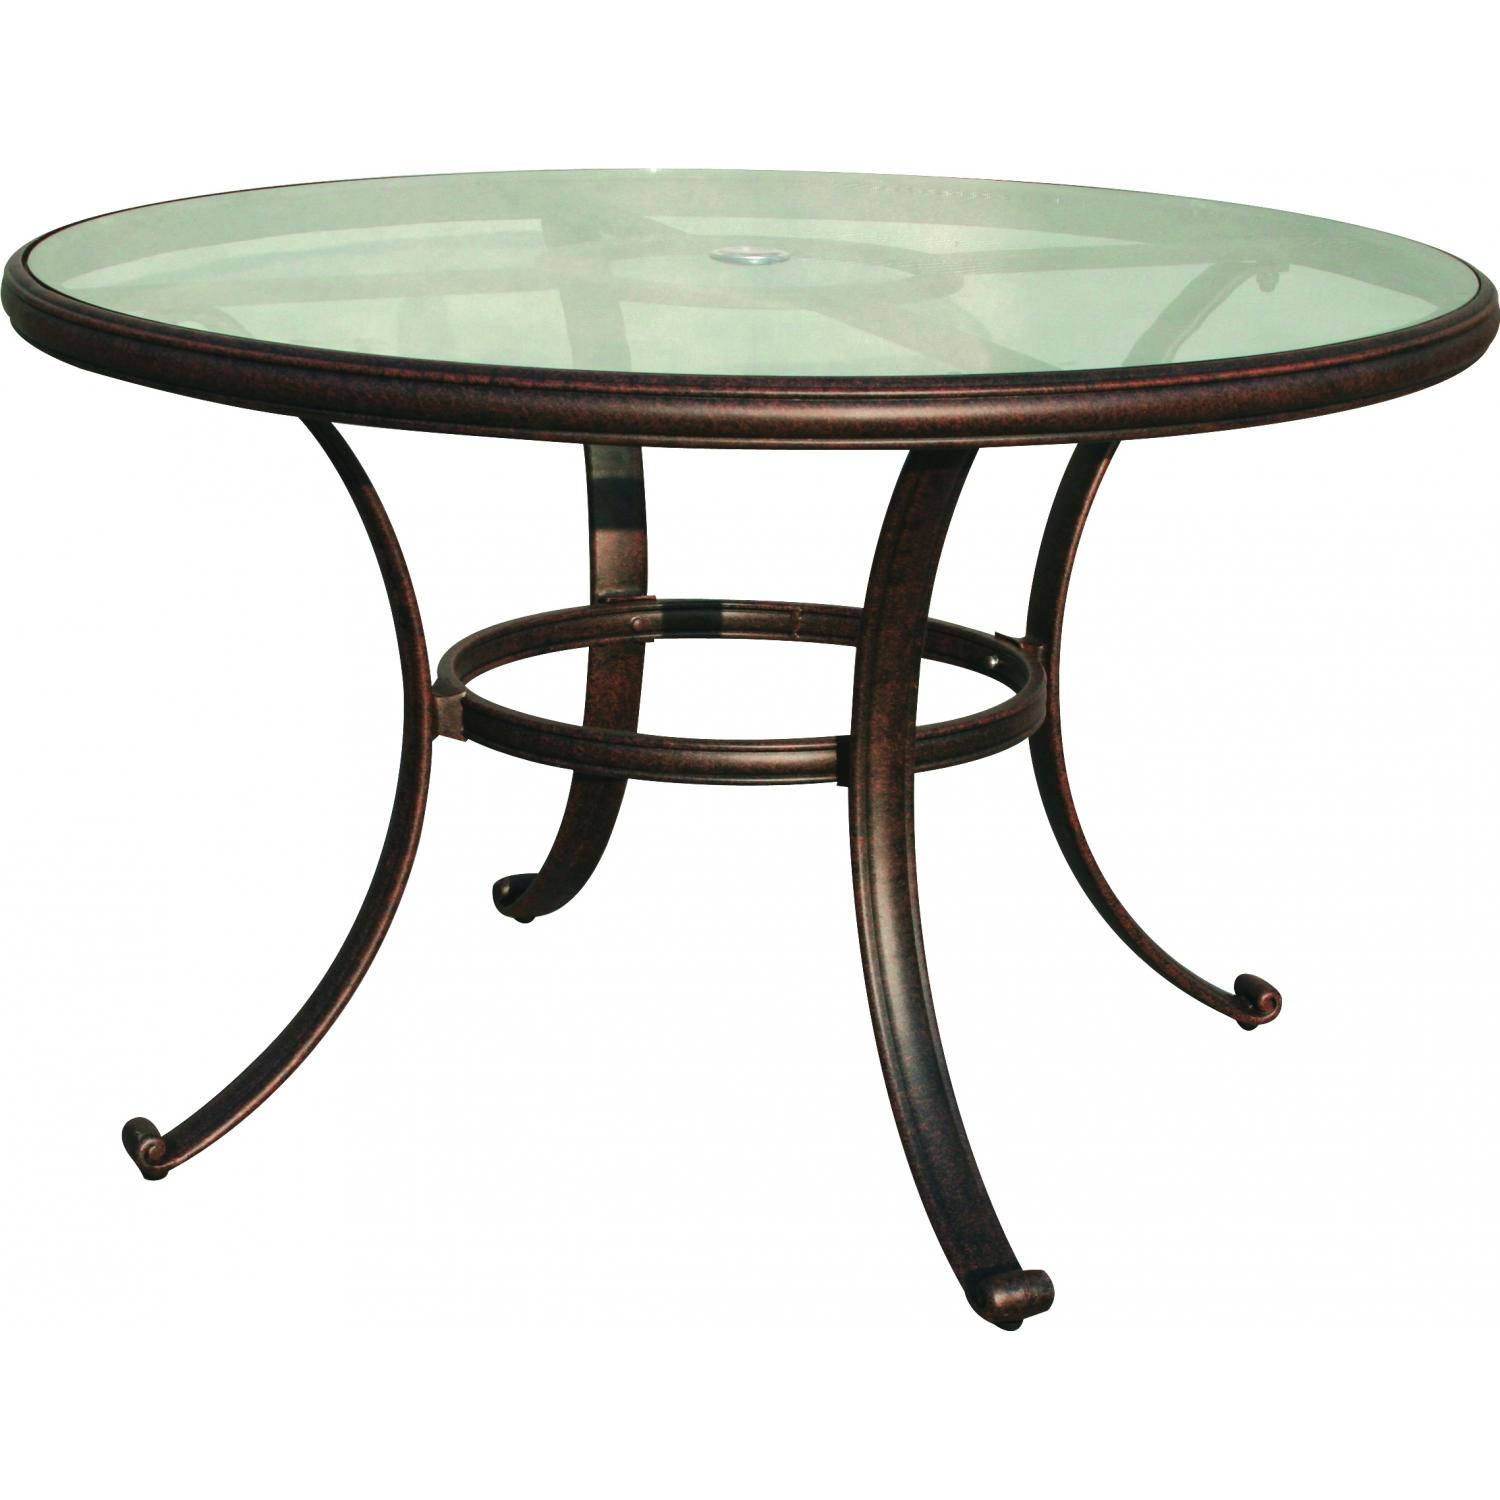 patio dining table glass photo - 6